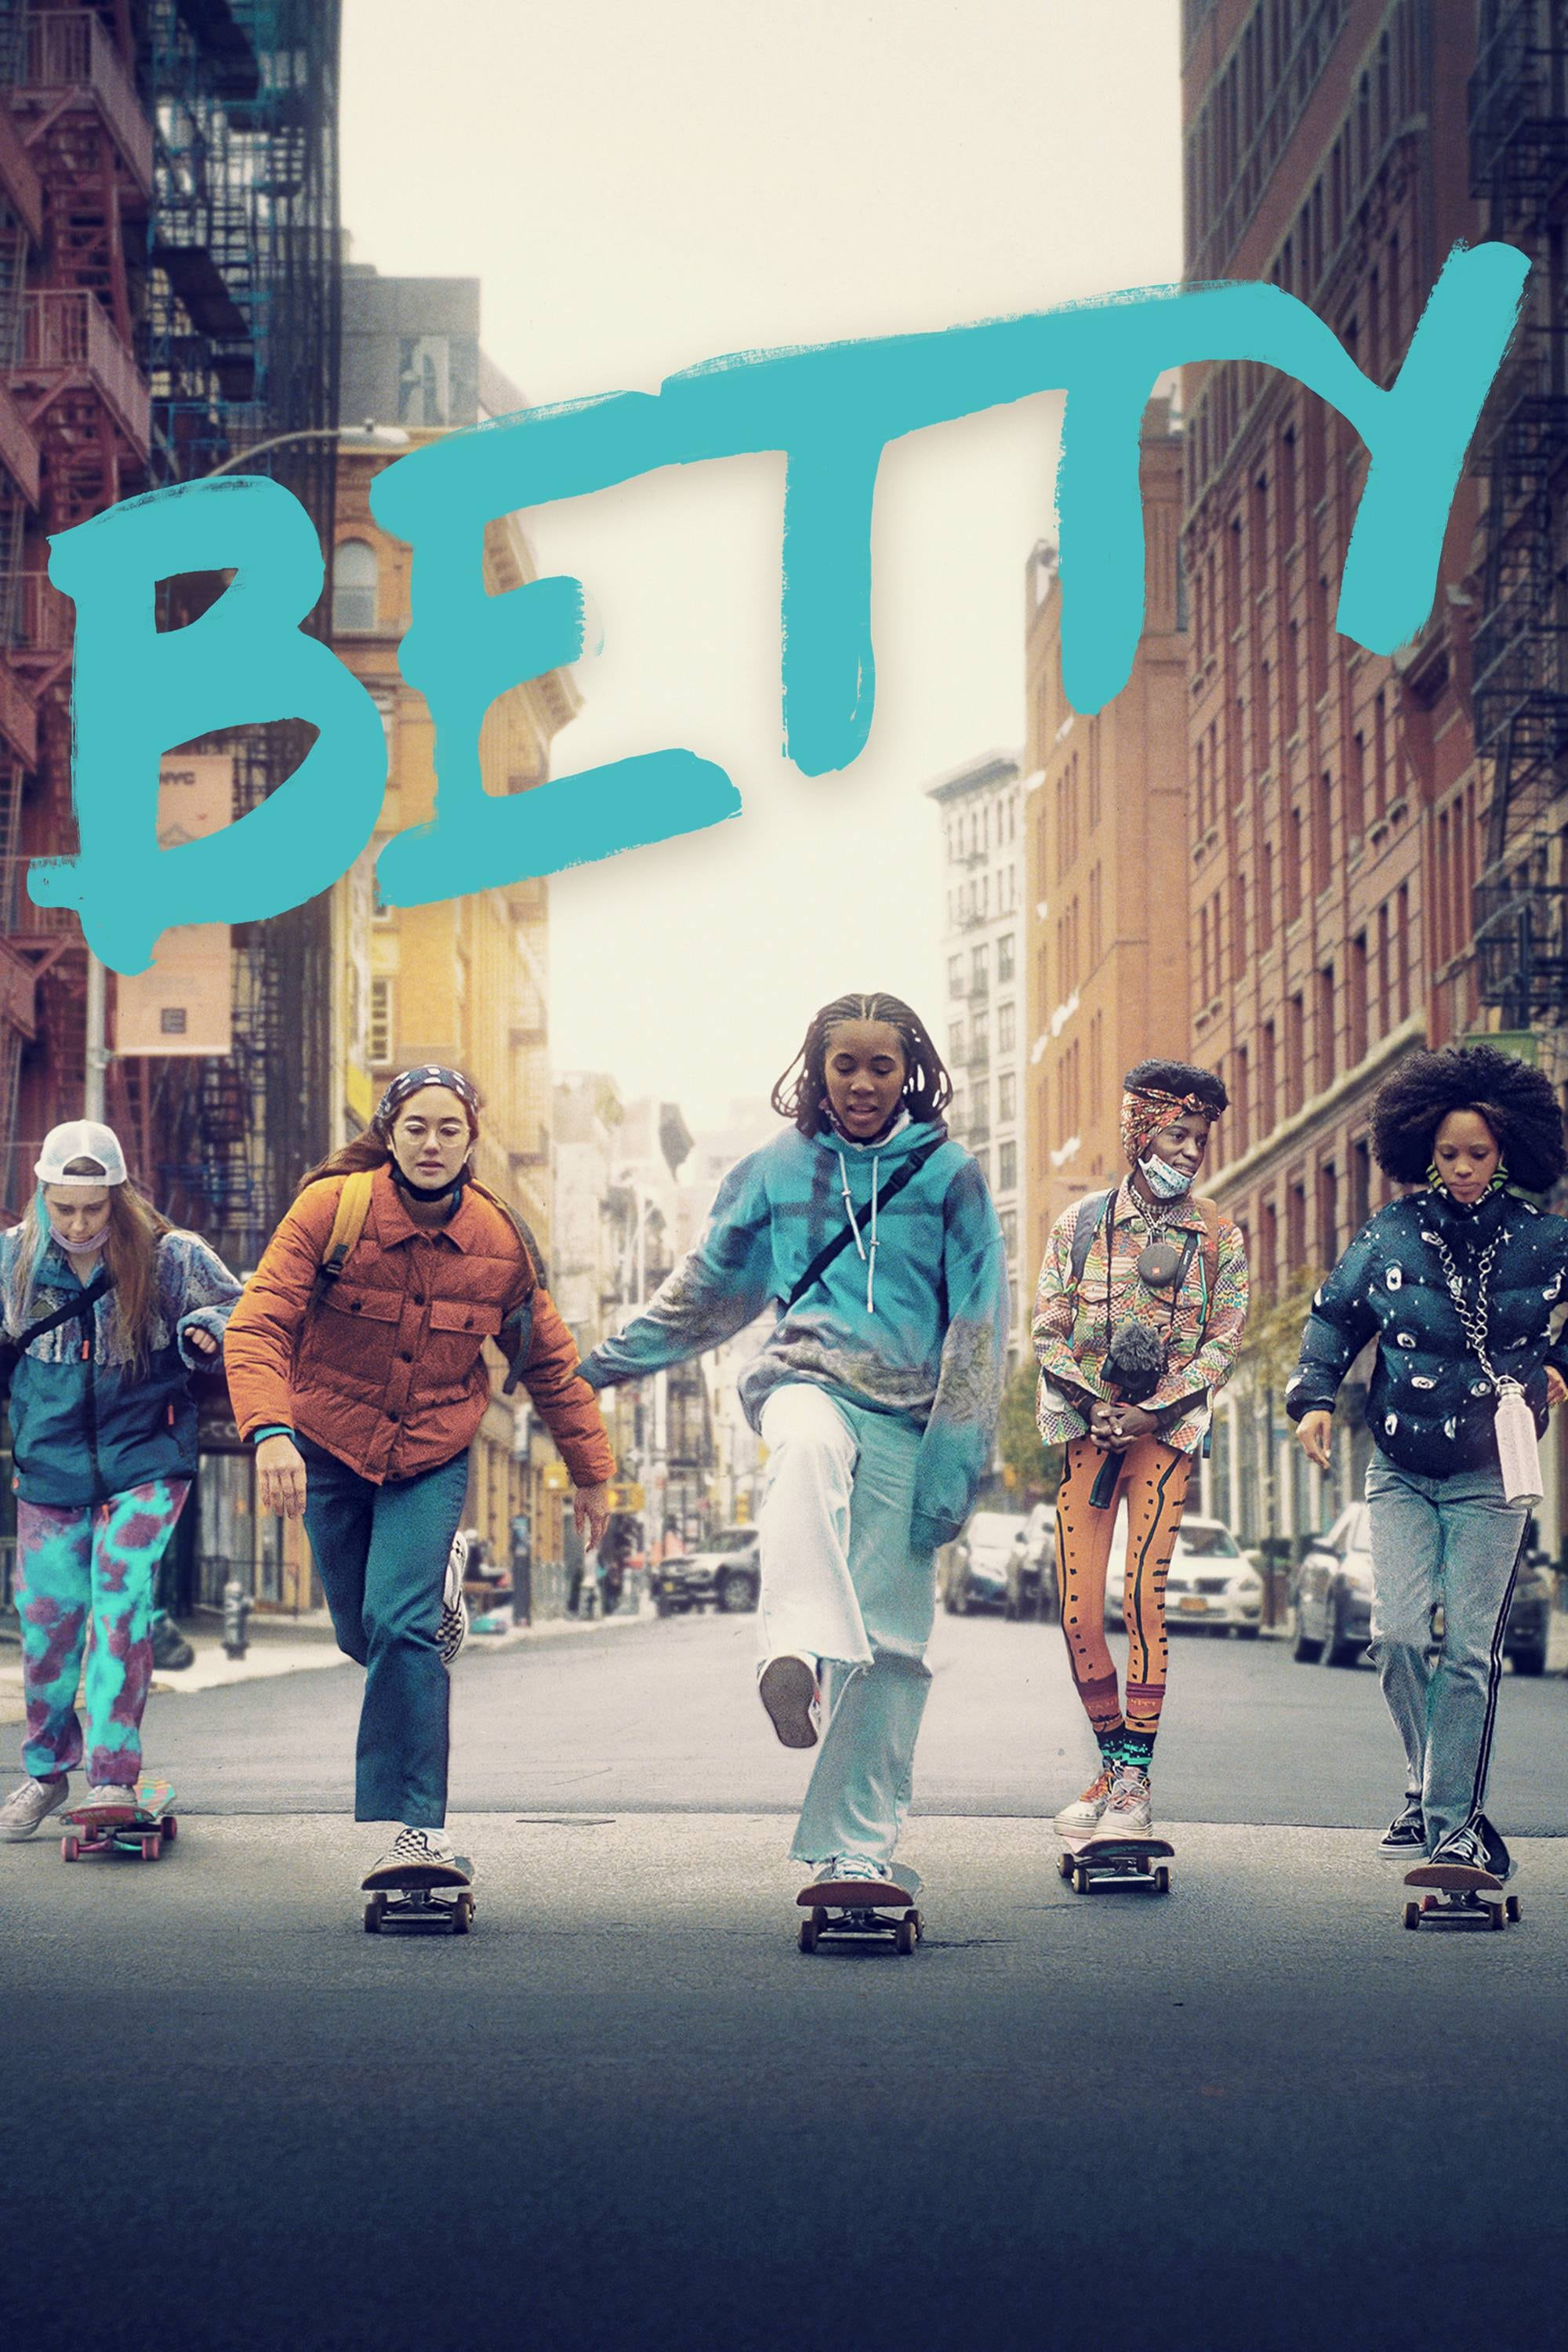 Betty TV Shows About New York City